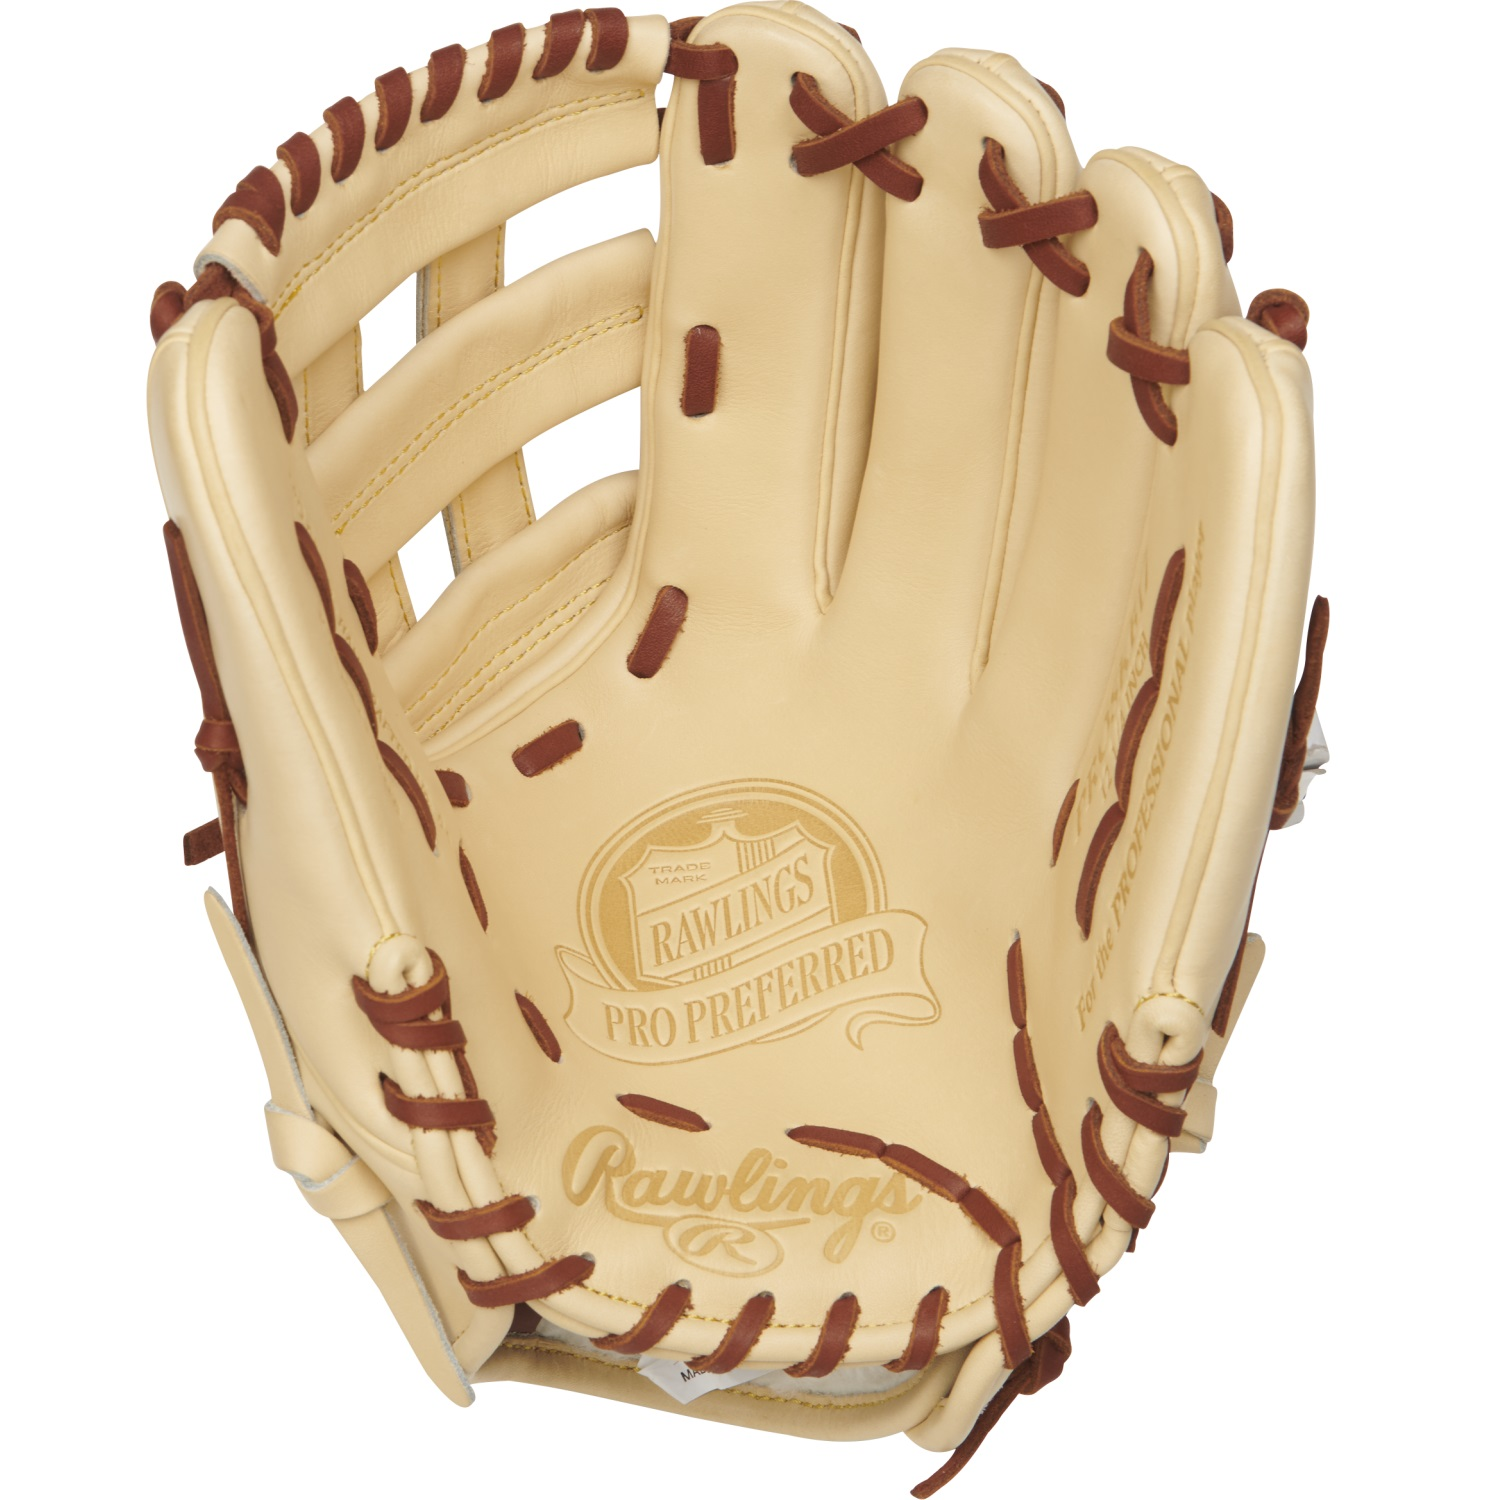 "Rawlings 12.25"" Pro Preferred Series Baseball Glove, Right Hand Throw"